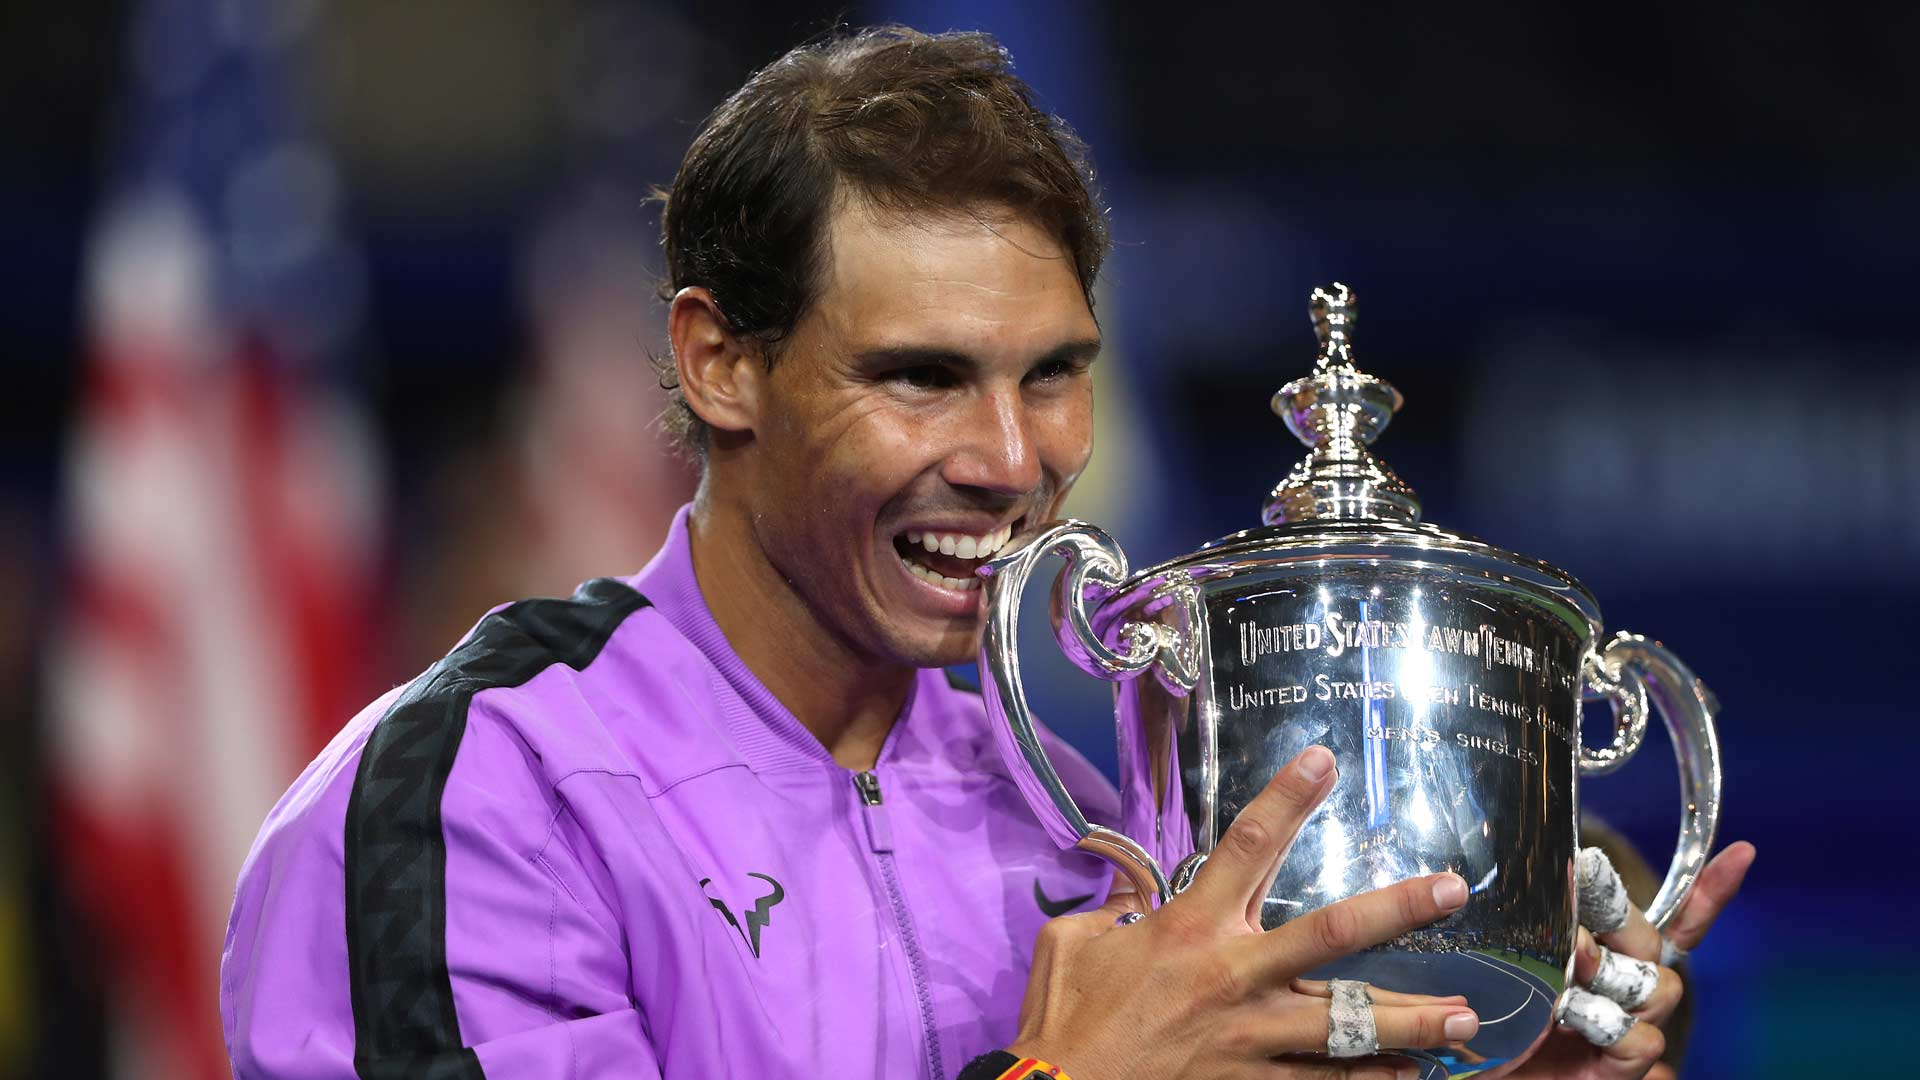 Nadal bites trophy 2019 <a href='https://www.atptour.com/en/tournaments/us-open/560/overview'>US Open</a>